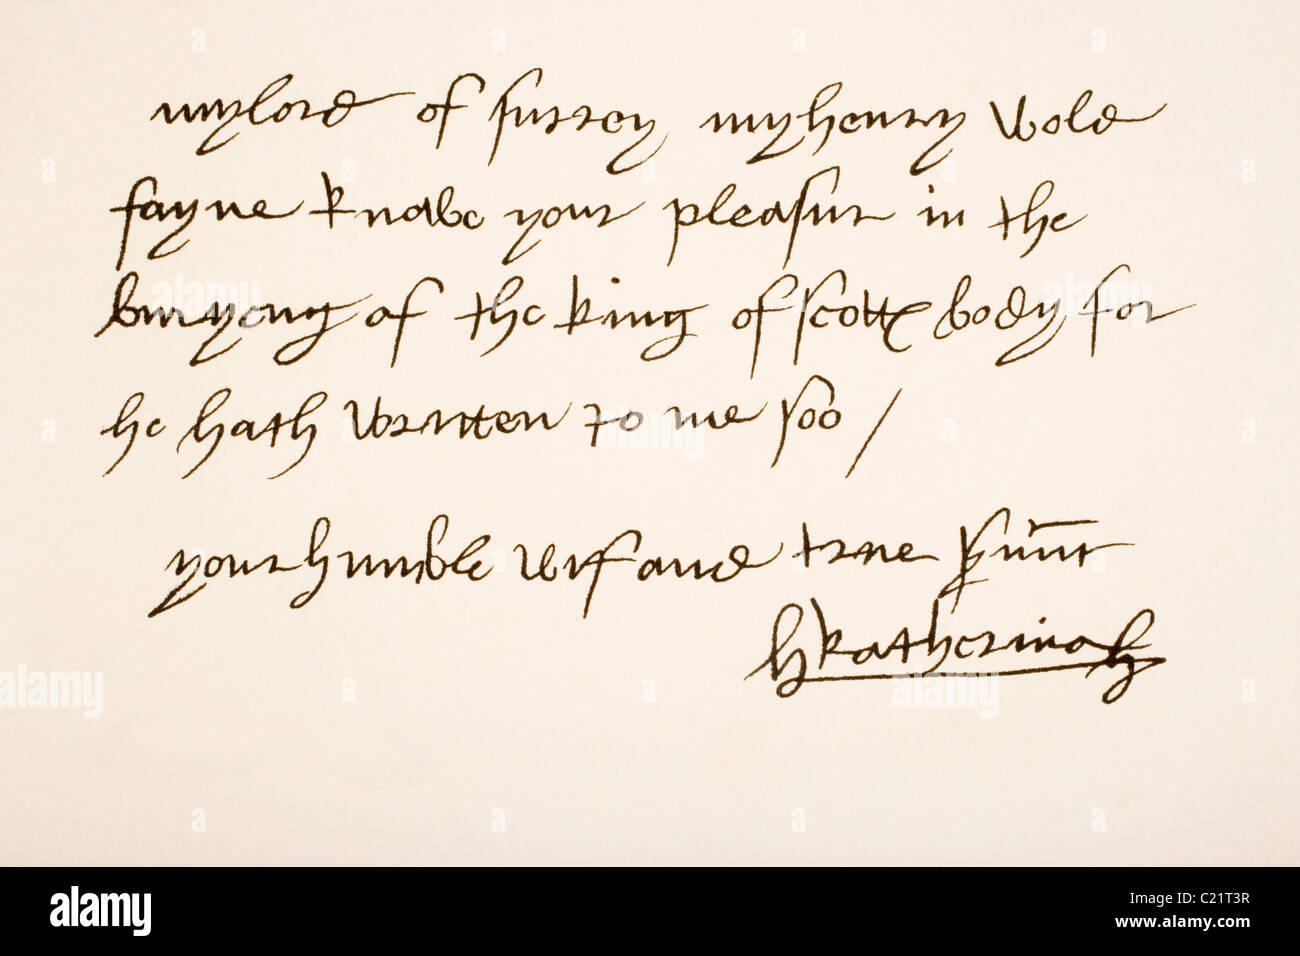 Catherine of Aragon, 1485 – 1536, also known as Katherine or Katharine. Queen of England. Hand writing sample. - Stock Image